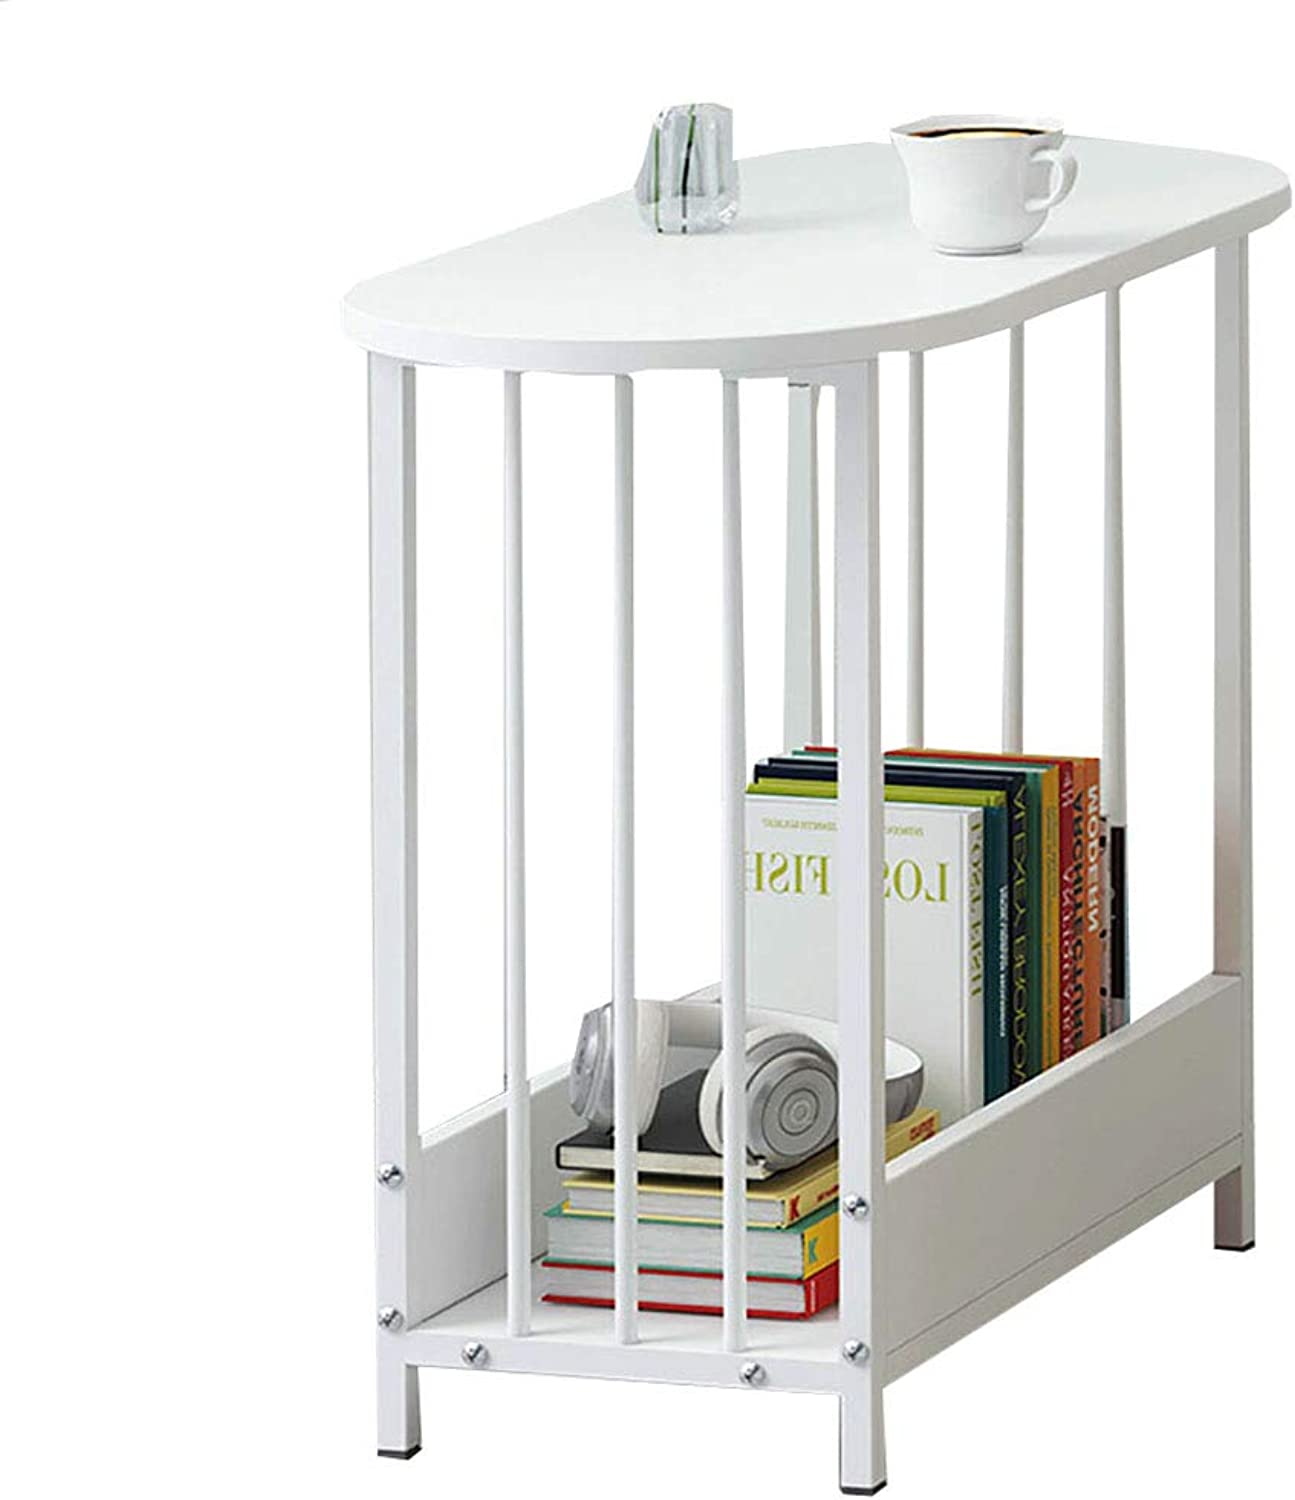 End Tables Side Table Nightstands Couch Living Room Table Sets Petite Stable and Sturdy with Storage Basket Multipurpose Space-Saving Chrome Metal Legs for Bedroom Parlor